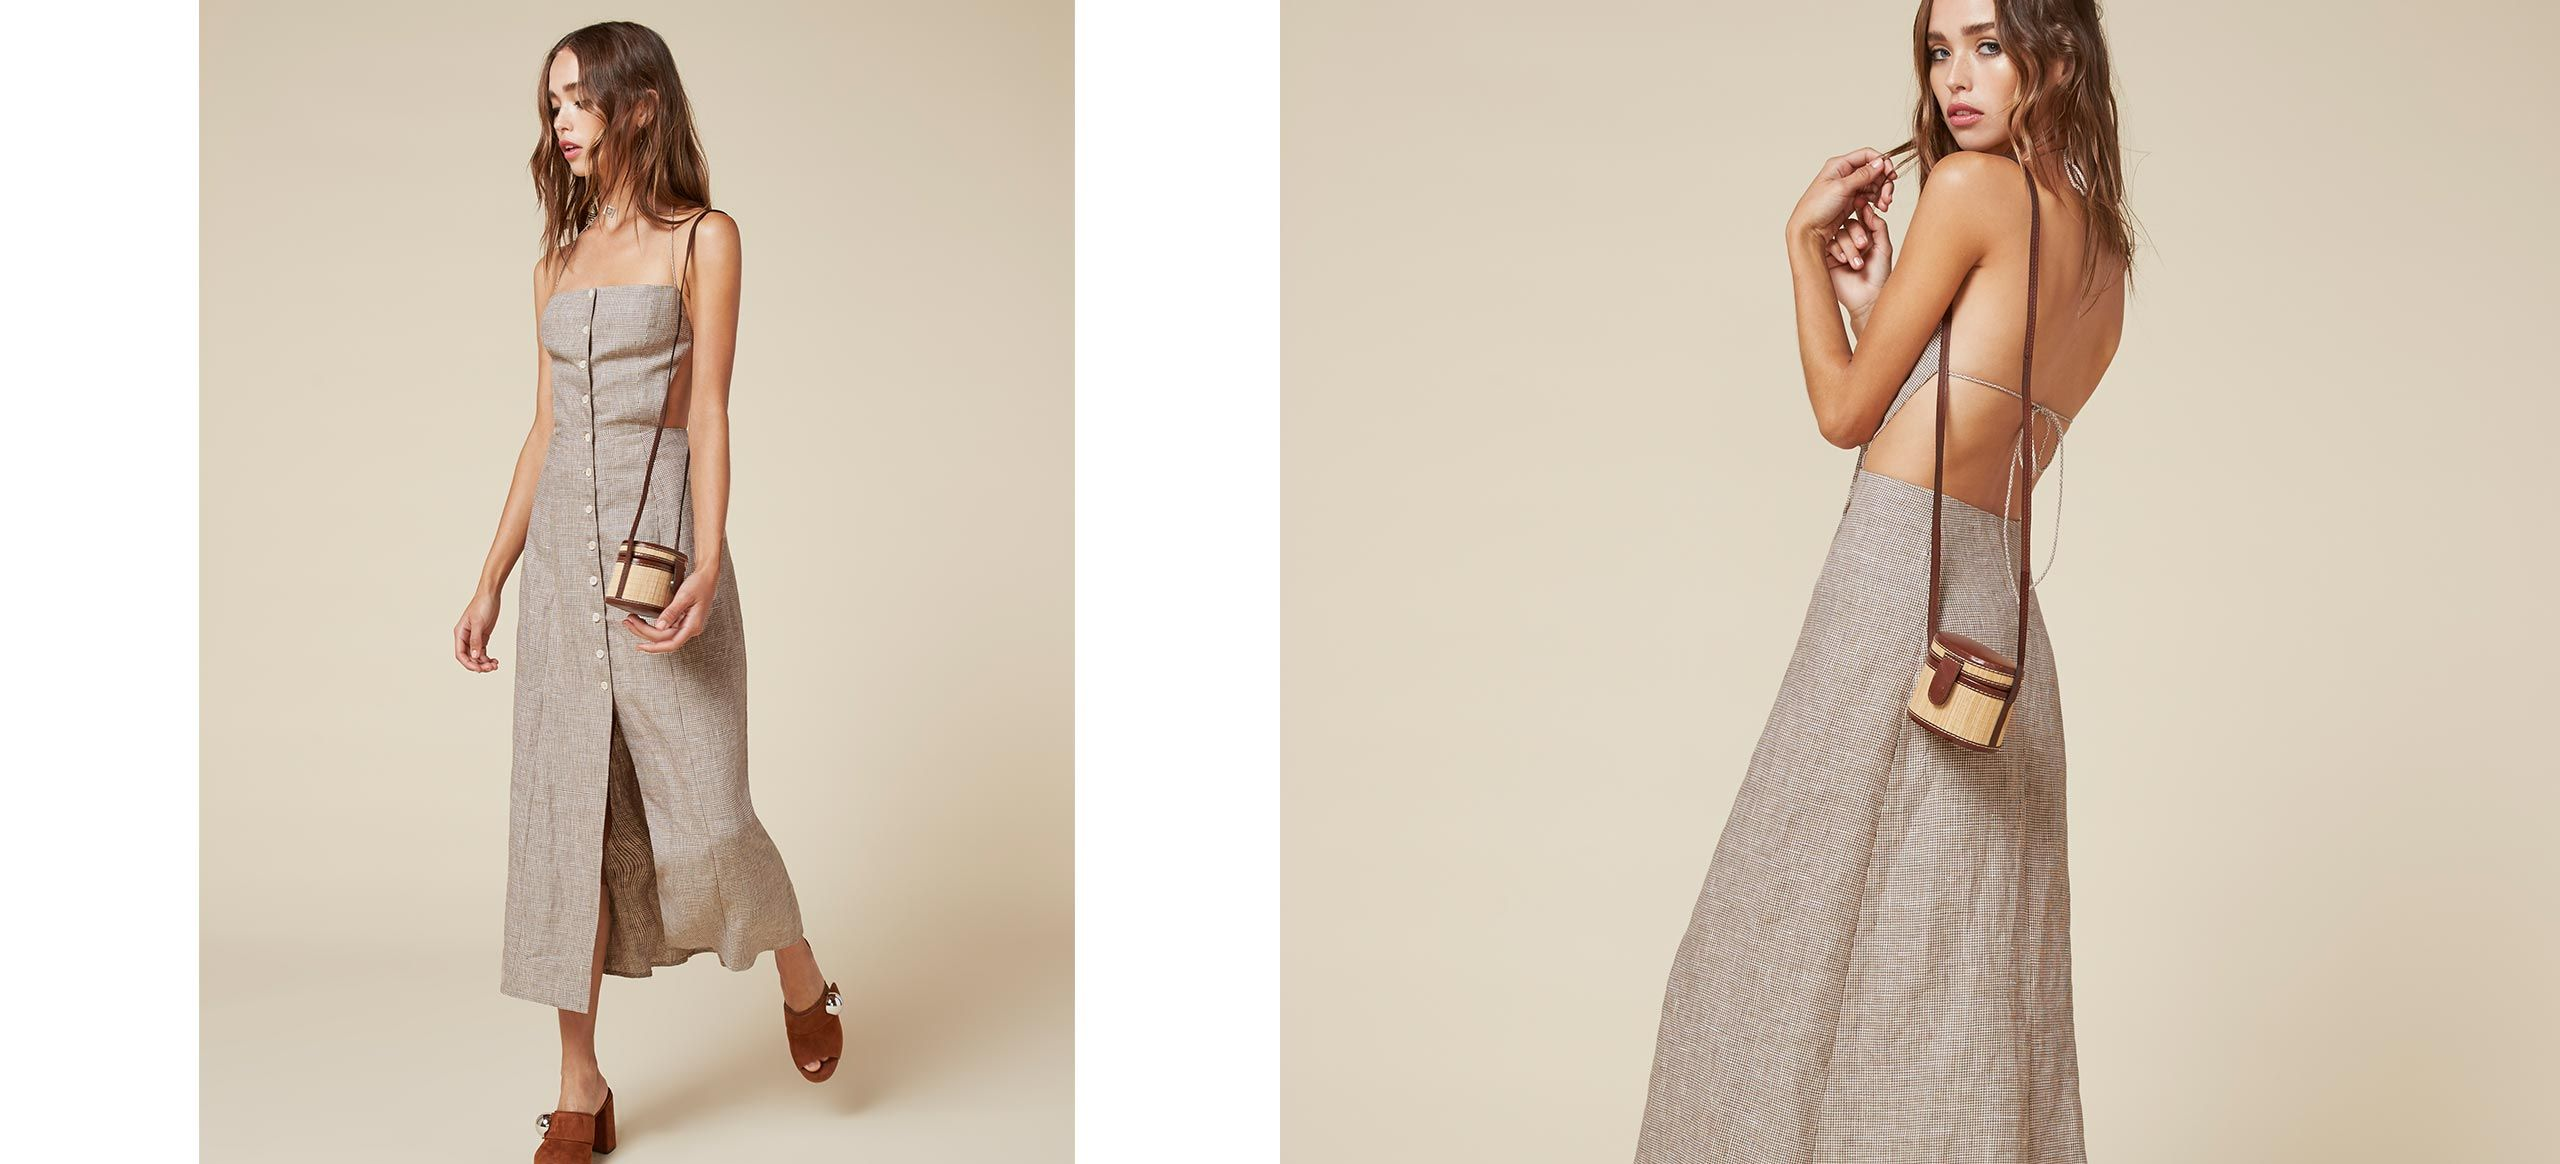 When it's too hot for a full dress. This is a button front, ankle length dress with an open back and straight neckline.